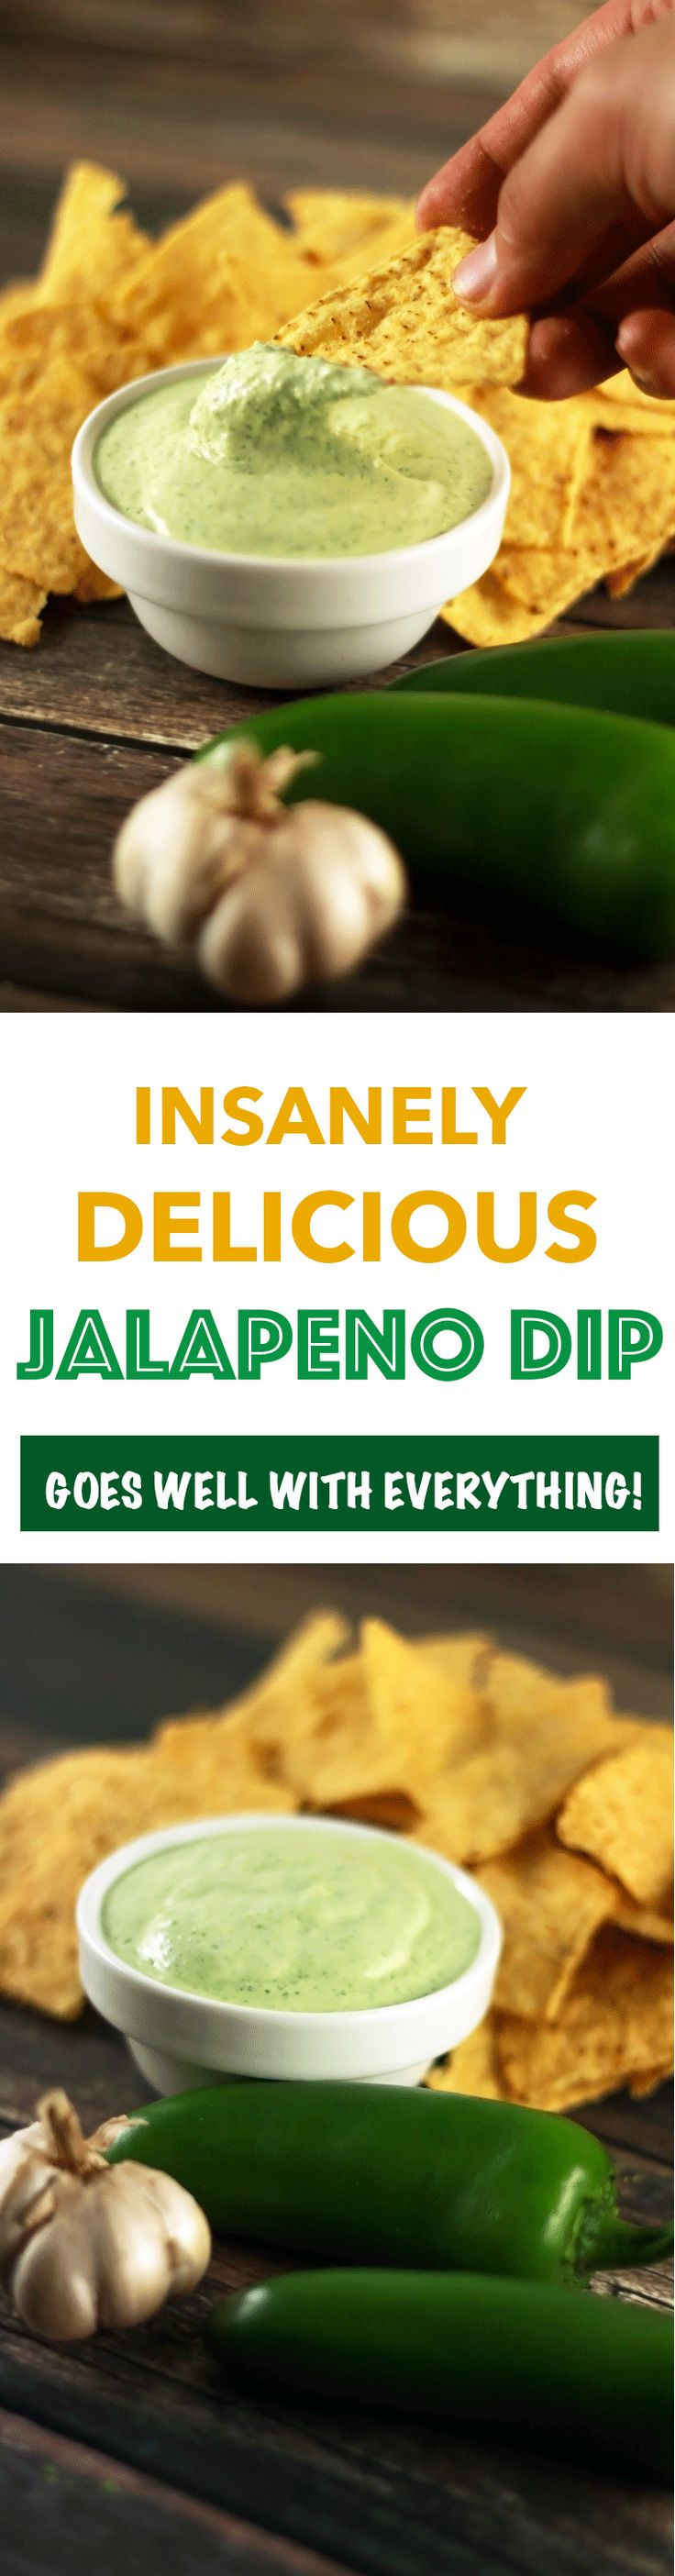 Dips are one of my absolute favorites! And this Jalapeno Dip has the most perfect spicy, tangy combination that will make you want to make it everyday!! YES, it really is that good! | ScrambledChefs.com